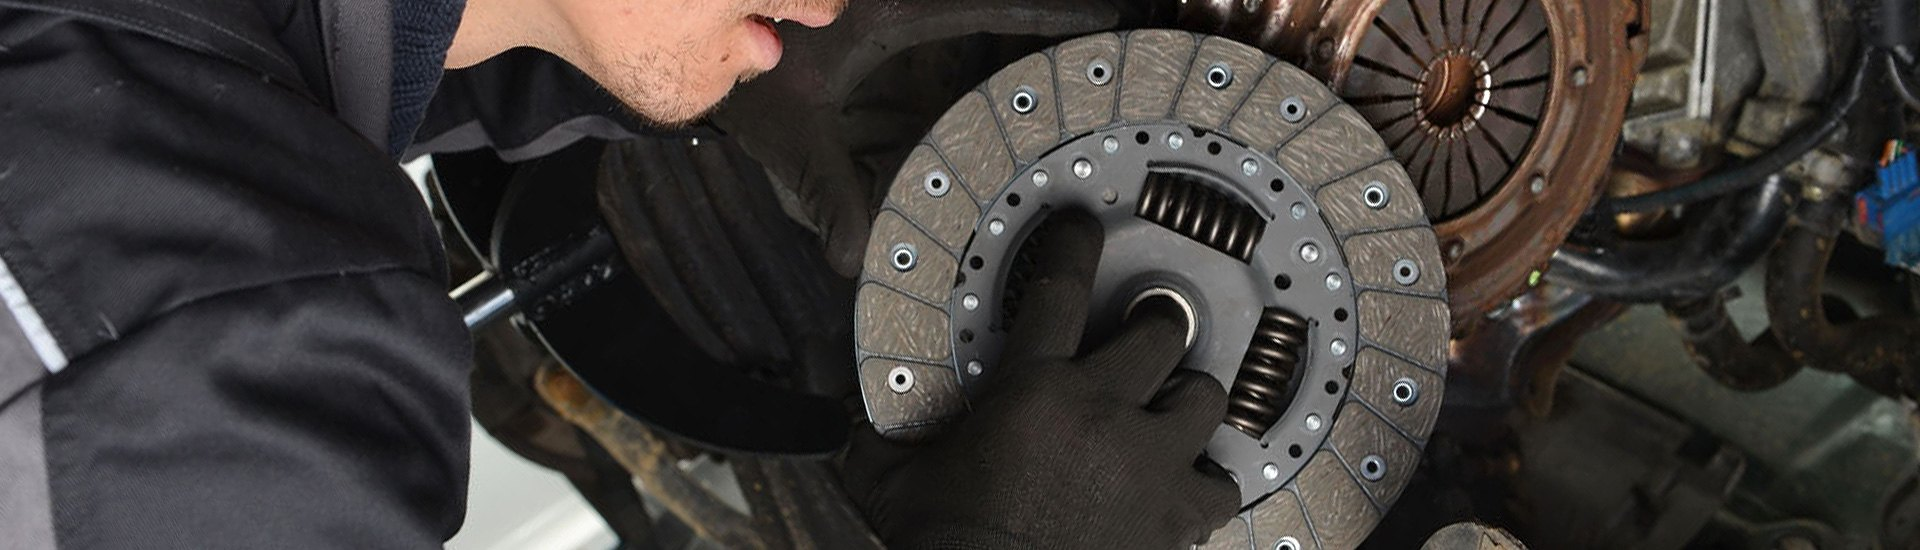 Clutch Kit Vs Disc Or Pressure Plate Automotive Motorcycle Powersports Parts Engine Clutches